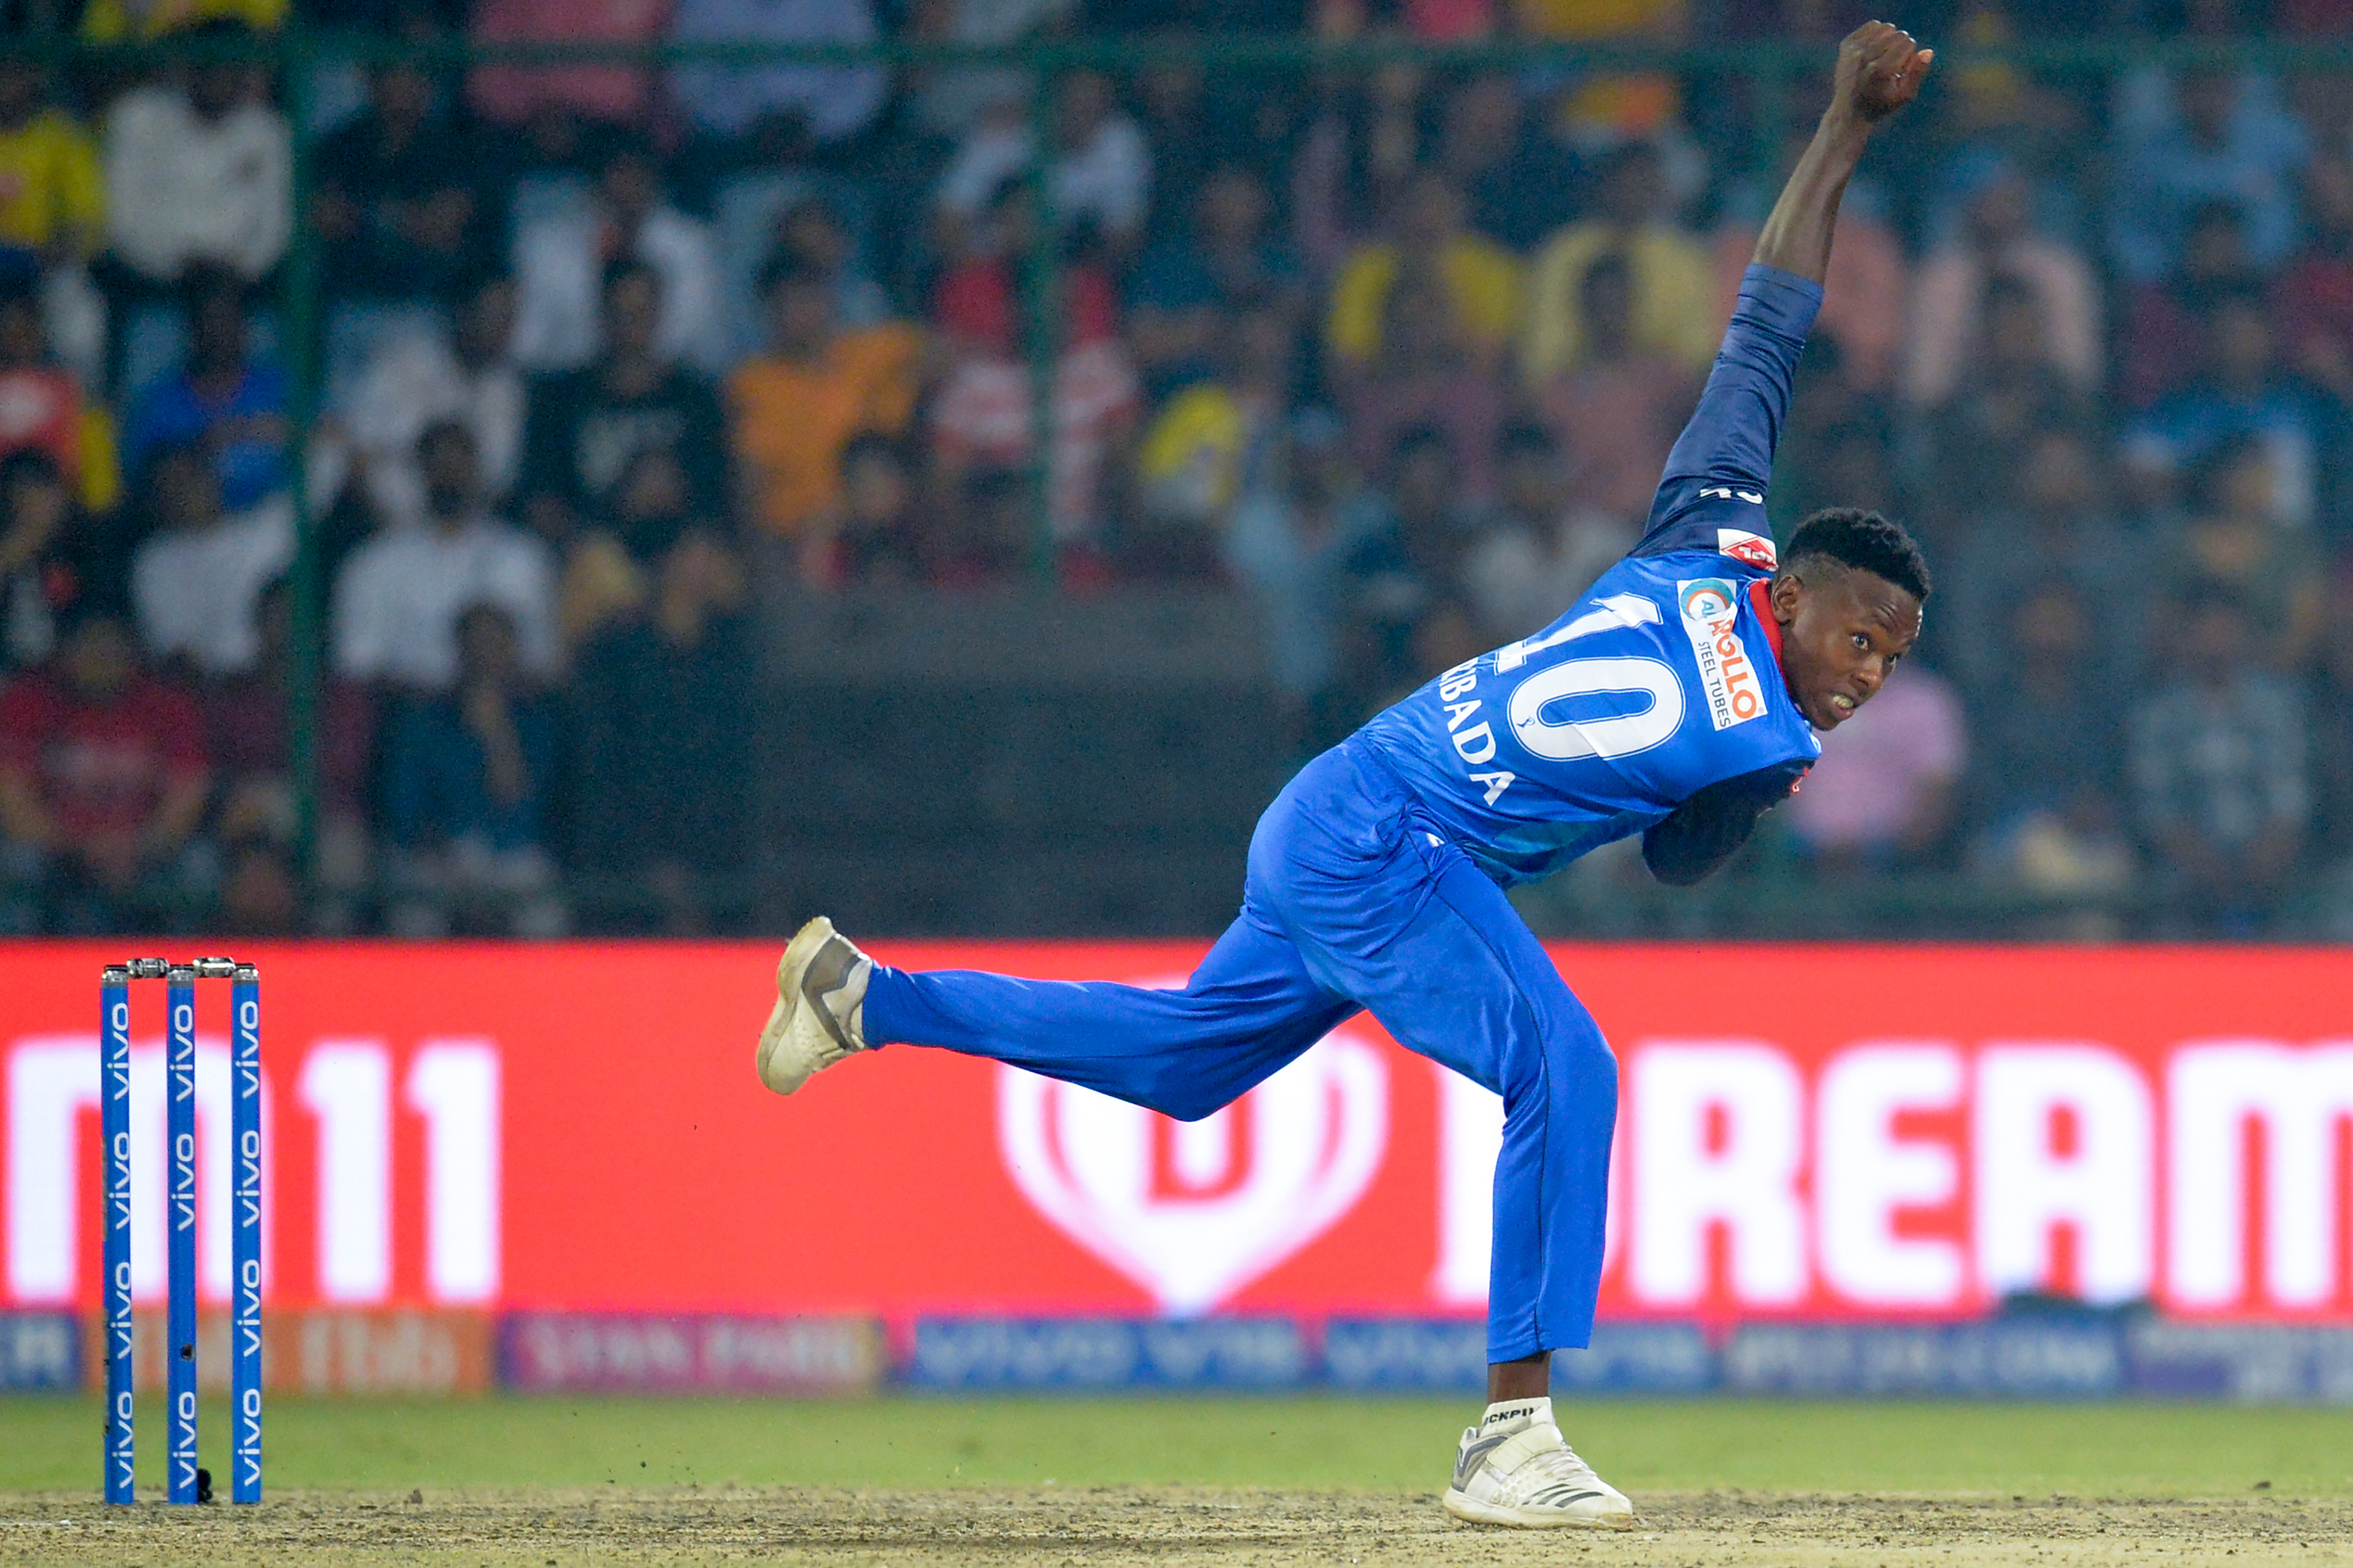 Kagiso Rabada leads Capitals to thrilling victory in Super Over